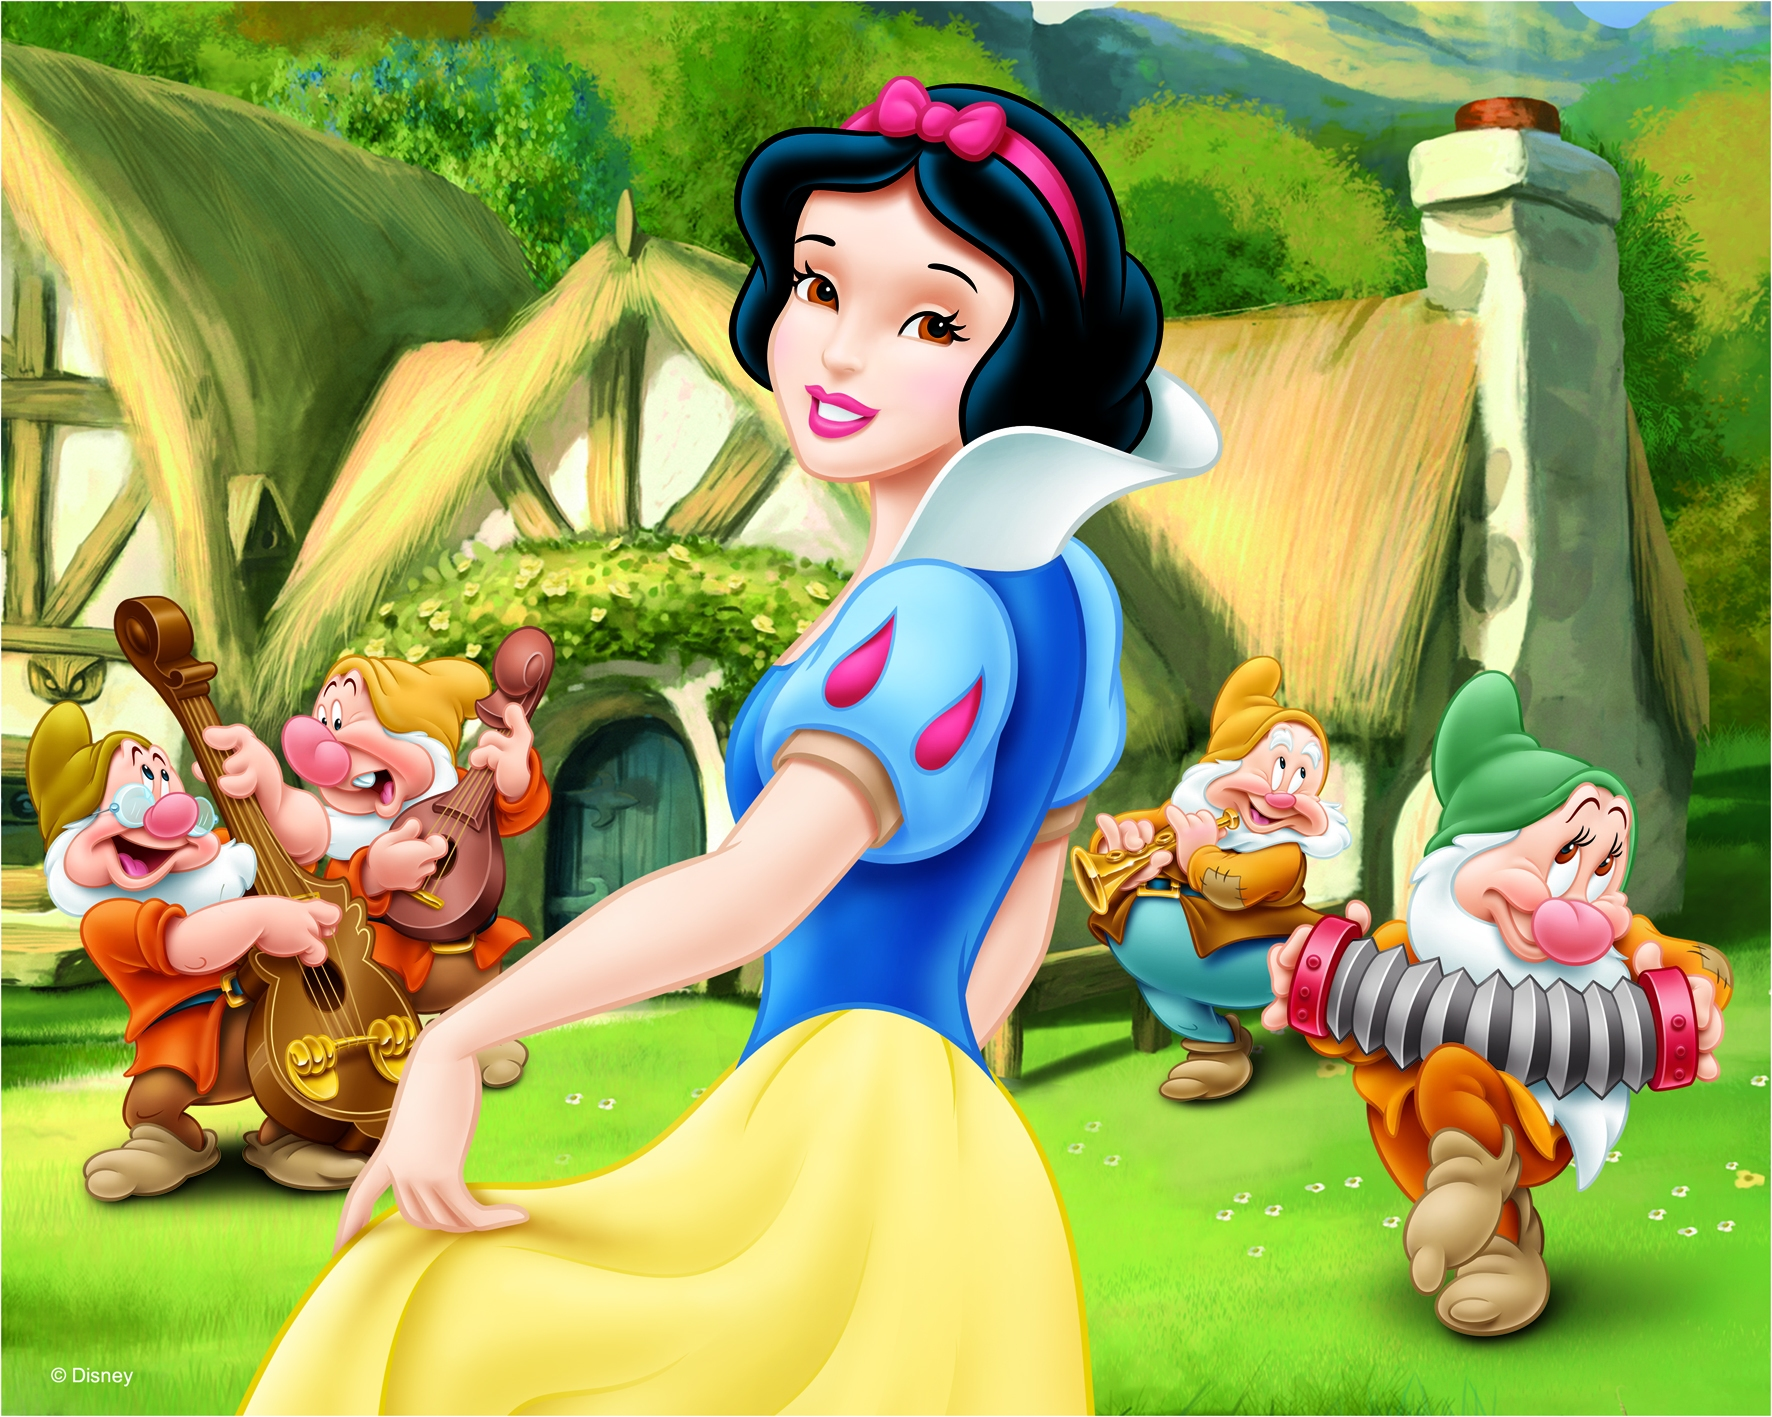 original-snow-white-and-the-seven-dwarfs-wallpaper-3.jpg